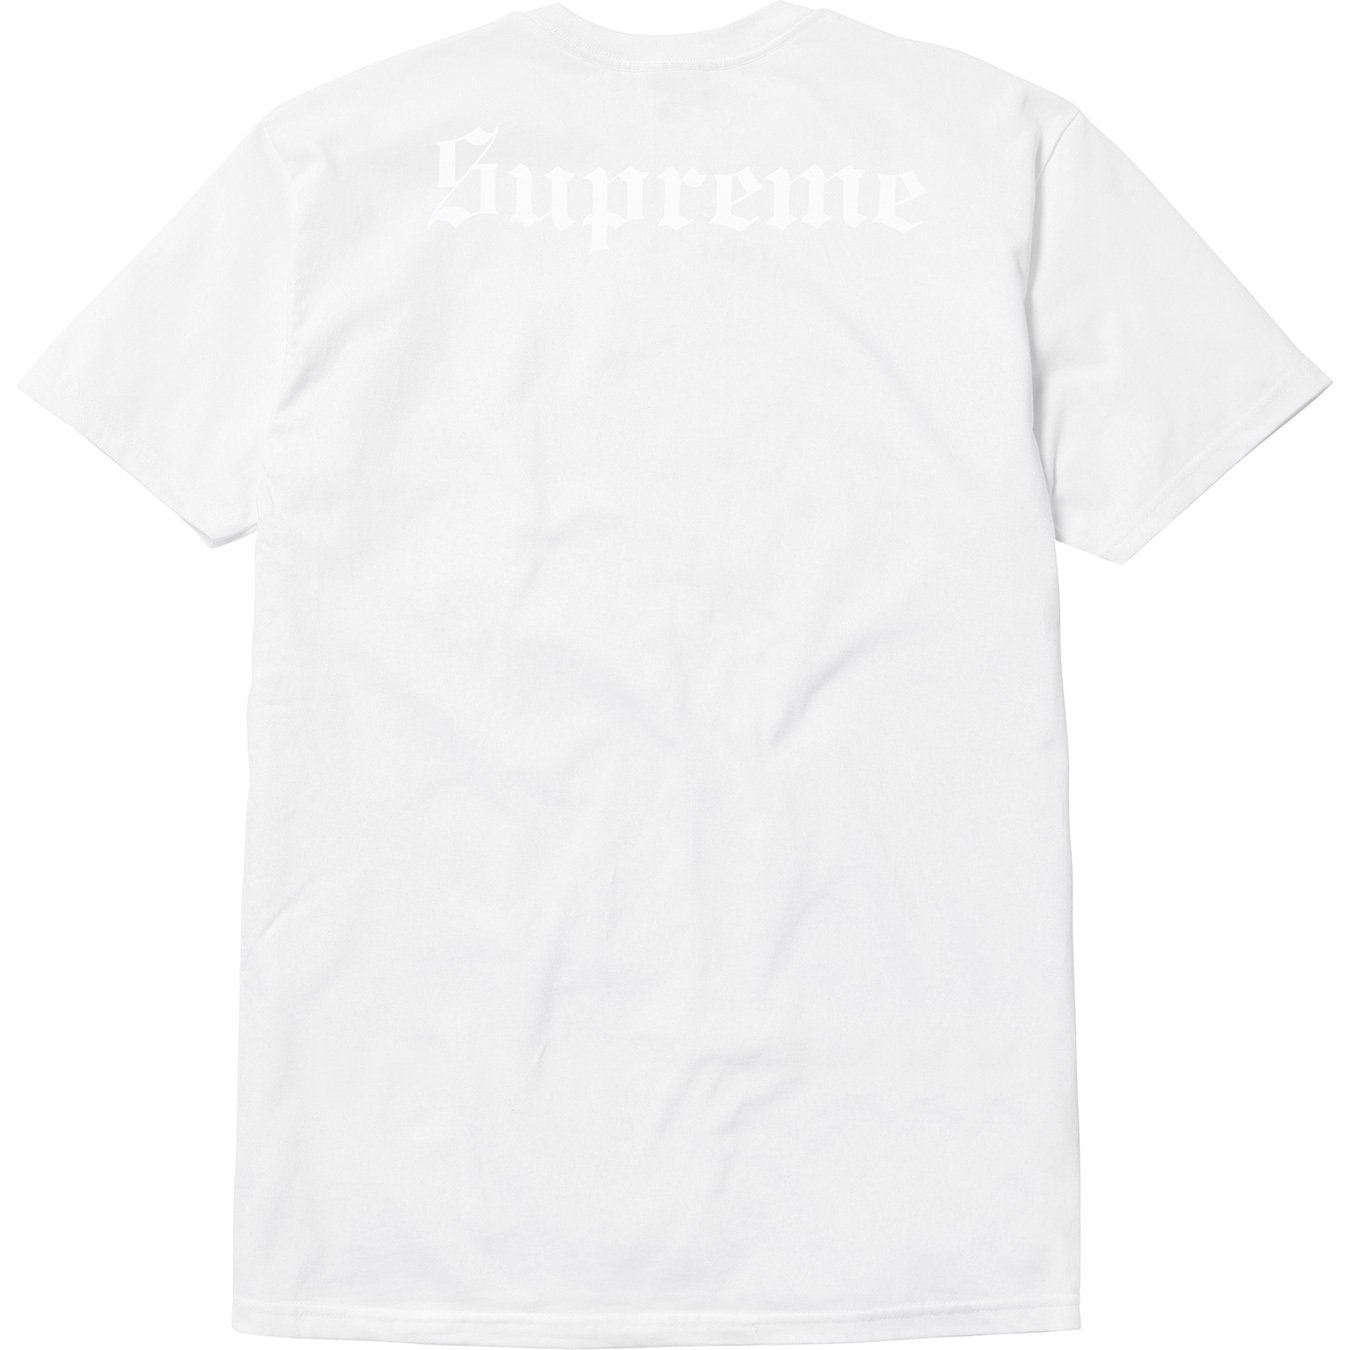 supreme-hellraiser-18ss-collaboration-release-20180428-week10-hell-on-earth-tee